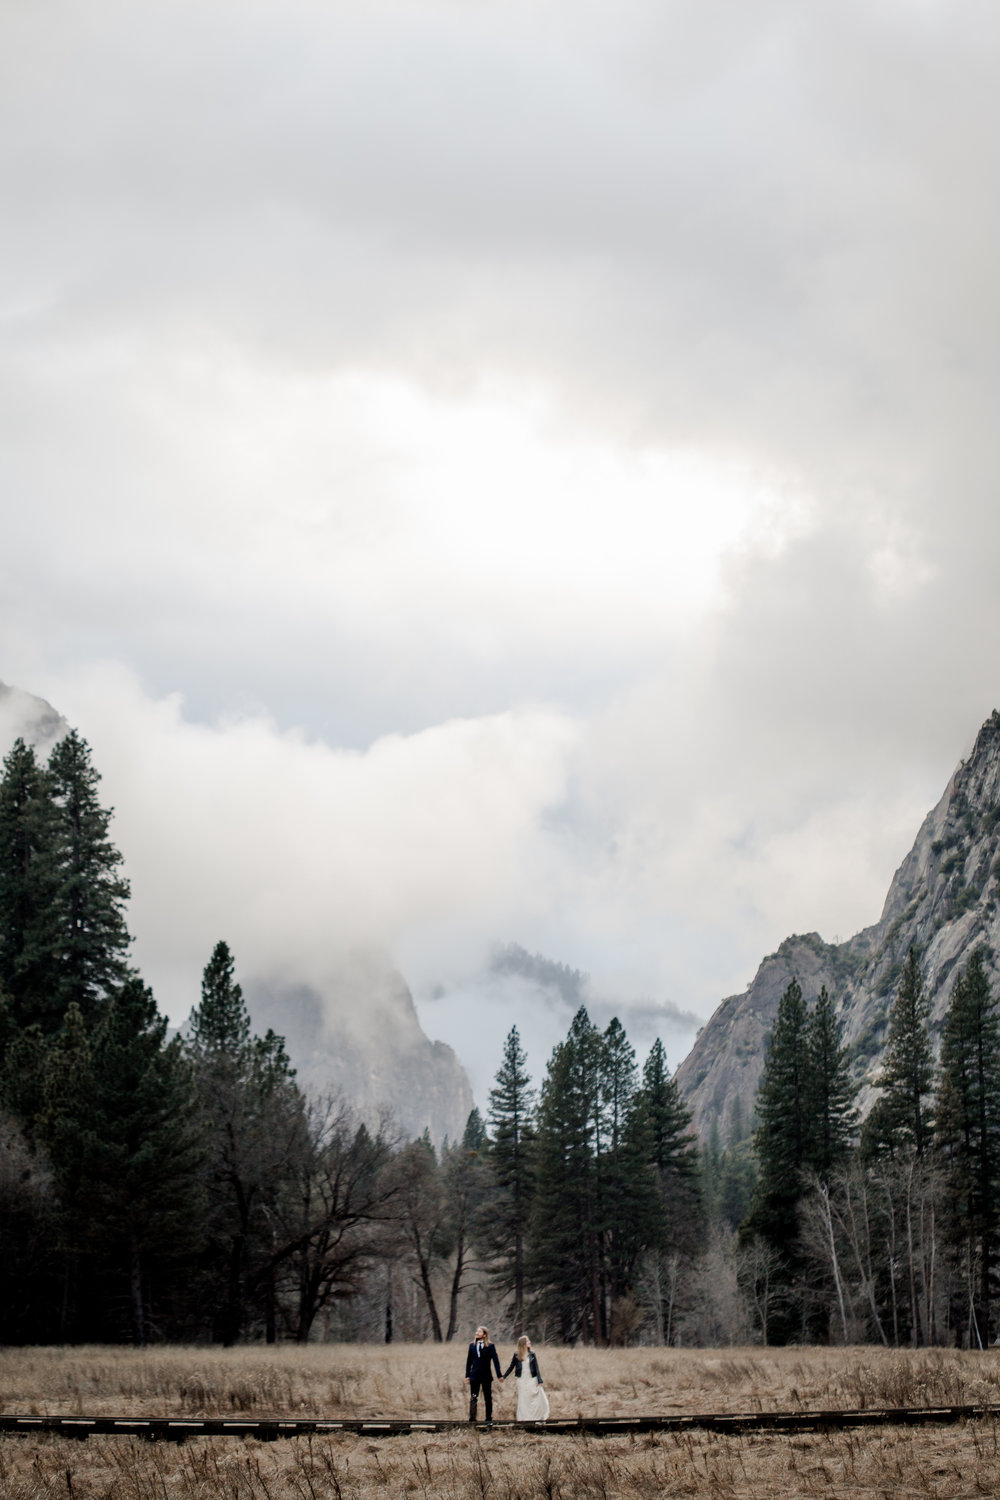 nicole-daacke-photography-yousemite-national-park-elopement-photographer-winter-cloud-moody-elope-inspiration-yosemite-valley-tunnel-view-winter-cloud-fog-weather-wedding-photos-89.jpg